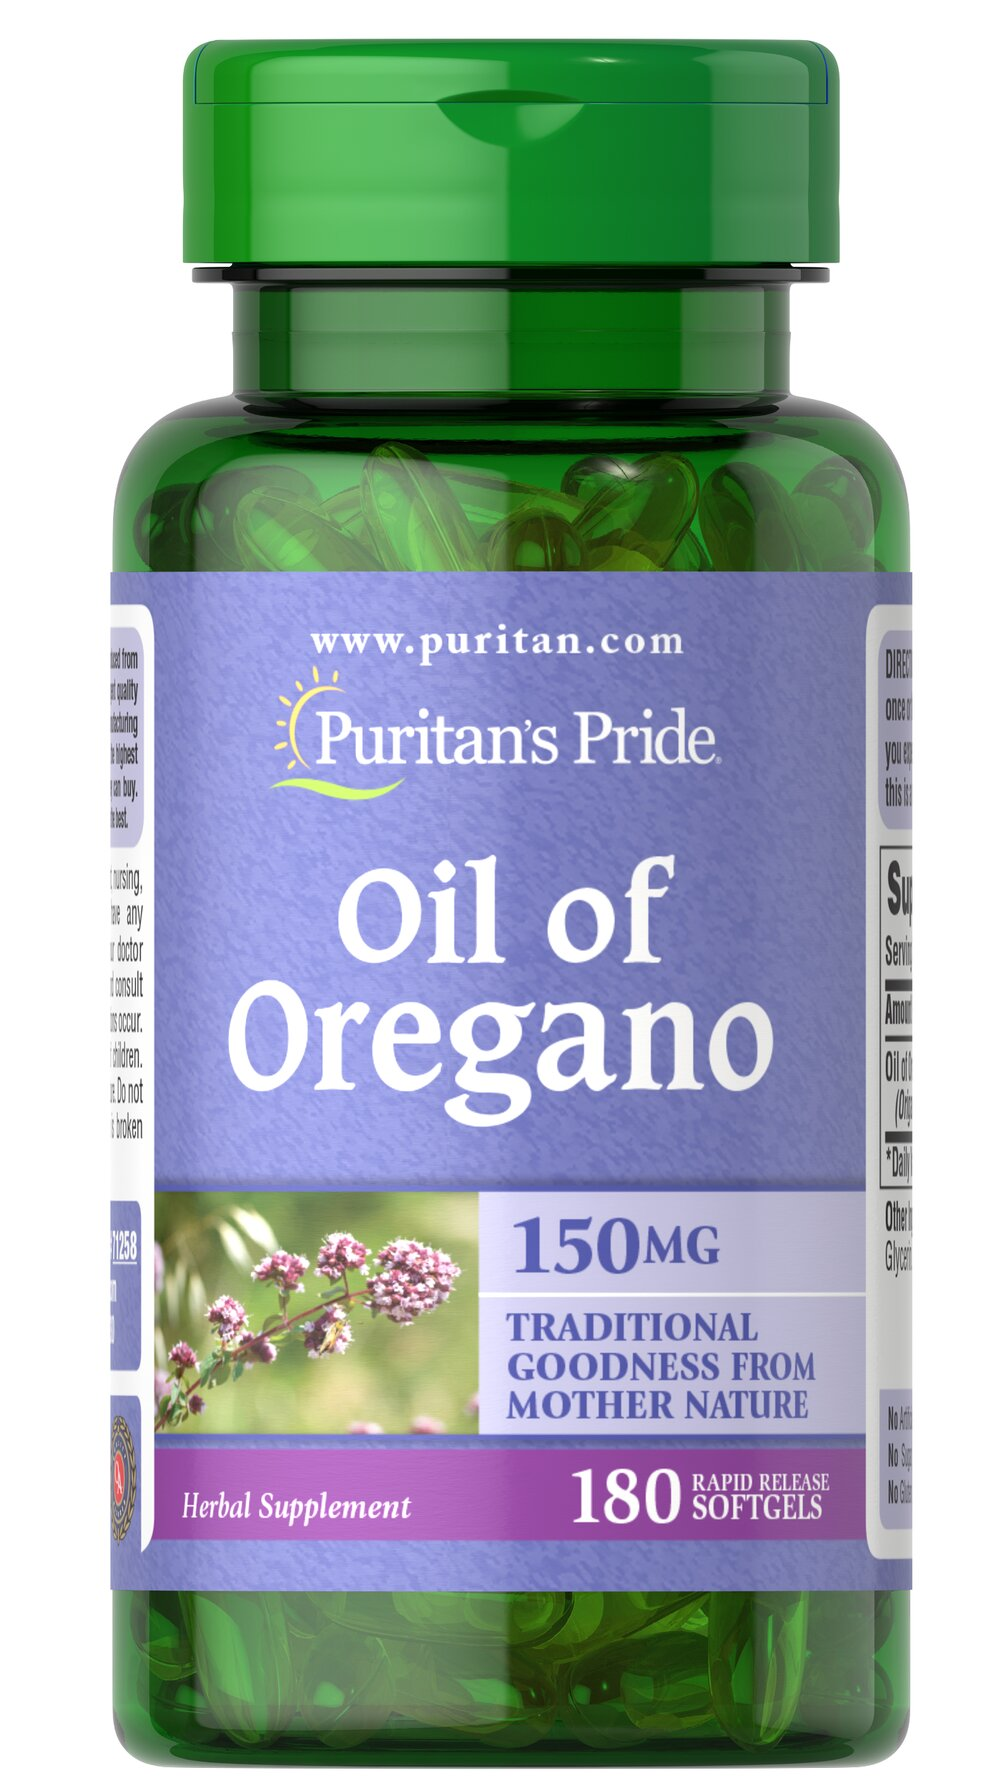 "Oil of Oregano Extract 1500 mg <p>Oil of Oregano equivalent to 1500 mg fresh oregano</p><p>Oil of Oregano has been held in high regard for its holistic qualities. It contains a number of valuable constituents and includes naturally occurring antioxidant phytochemicals.** Our high-quality softgels make it easy to obtain ""traditional goodness from Mother Nature."" </p>   180 Softgels 1500 mg $13.99"